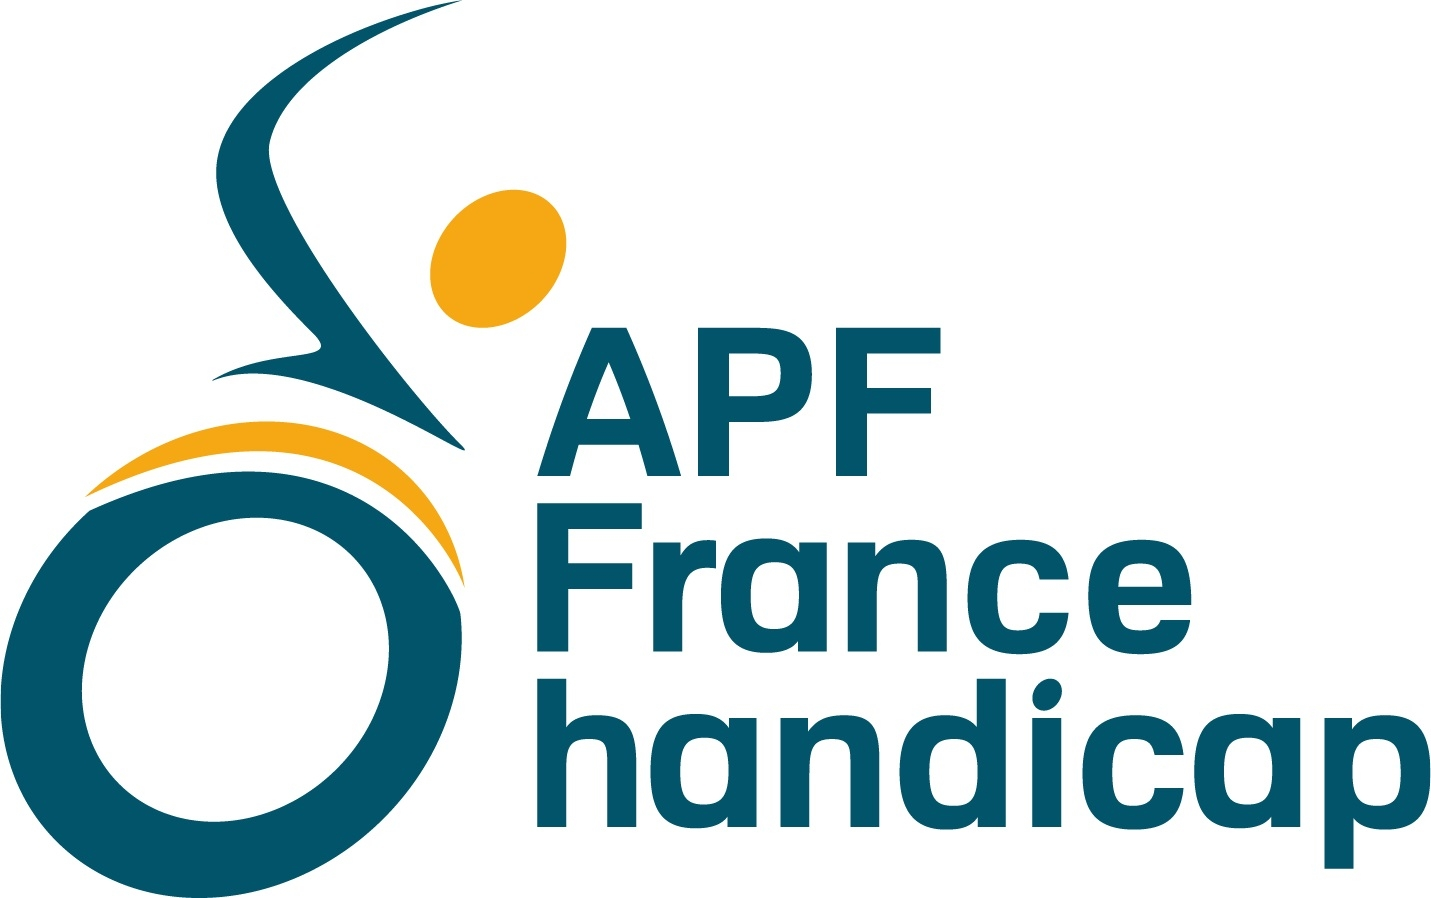 APF France handicap.jpg